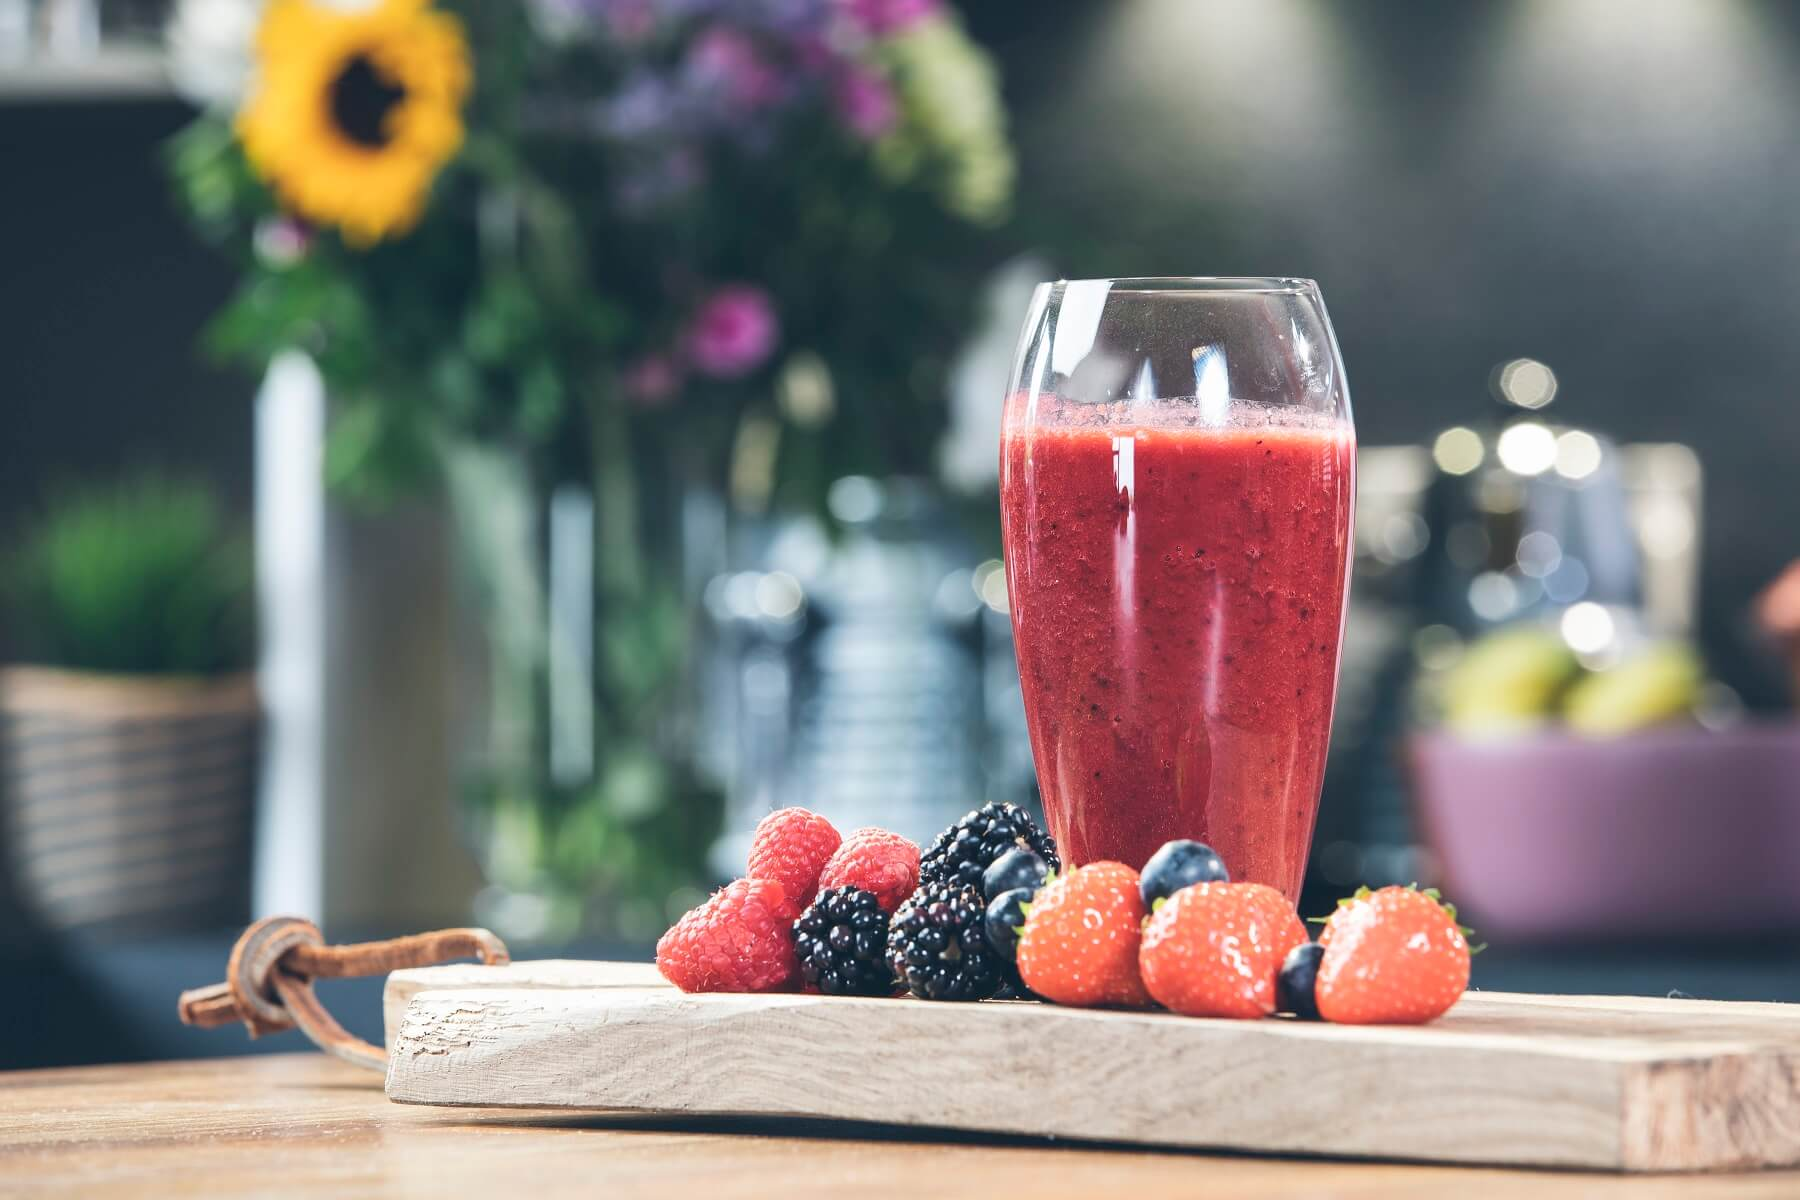 Antioxidant blast with blueberries, blackberries, raspberries and strawberries